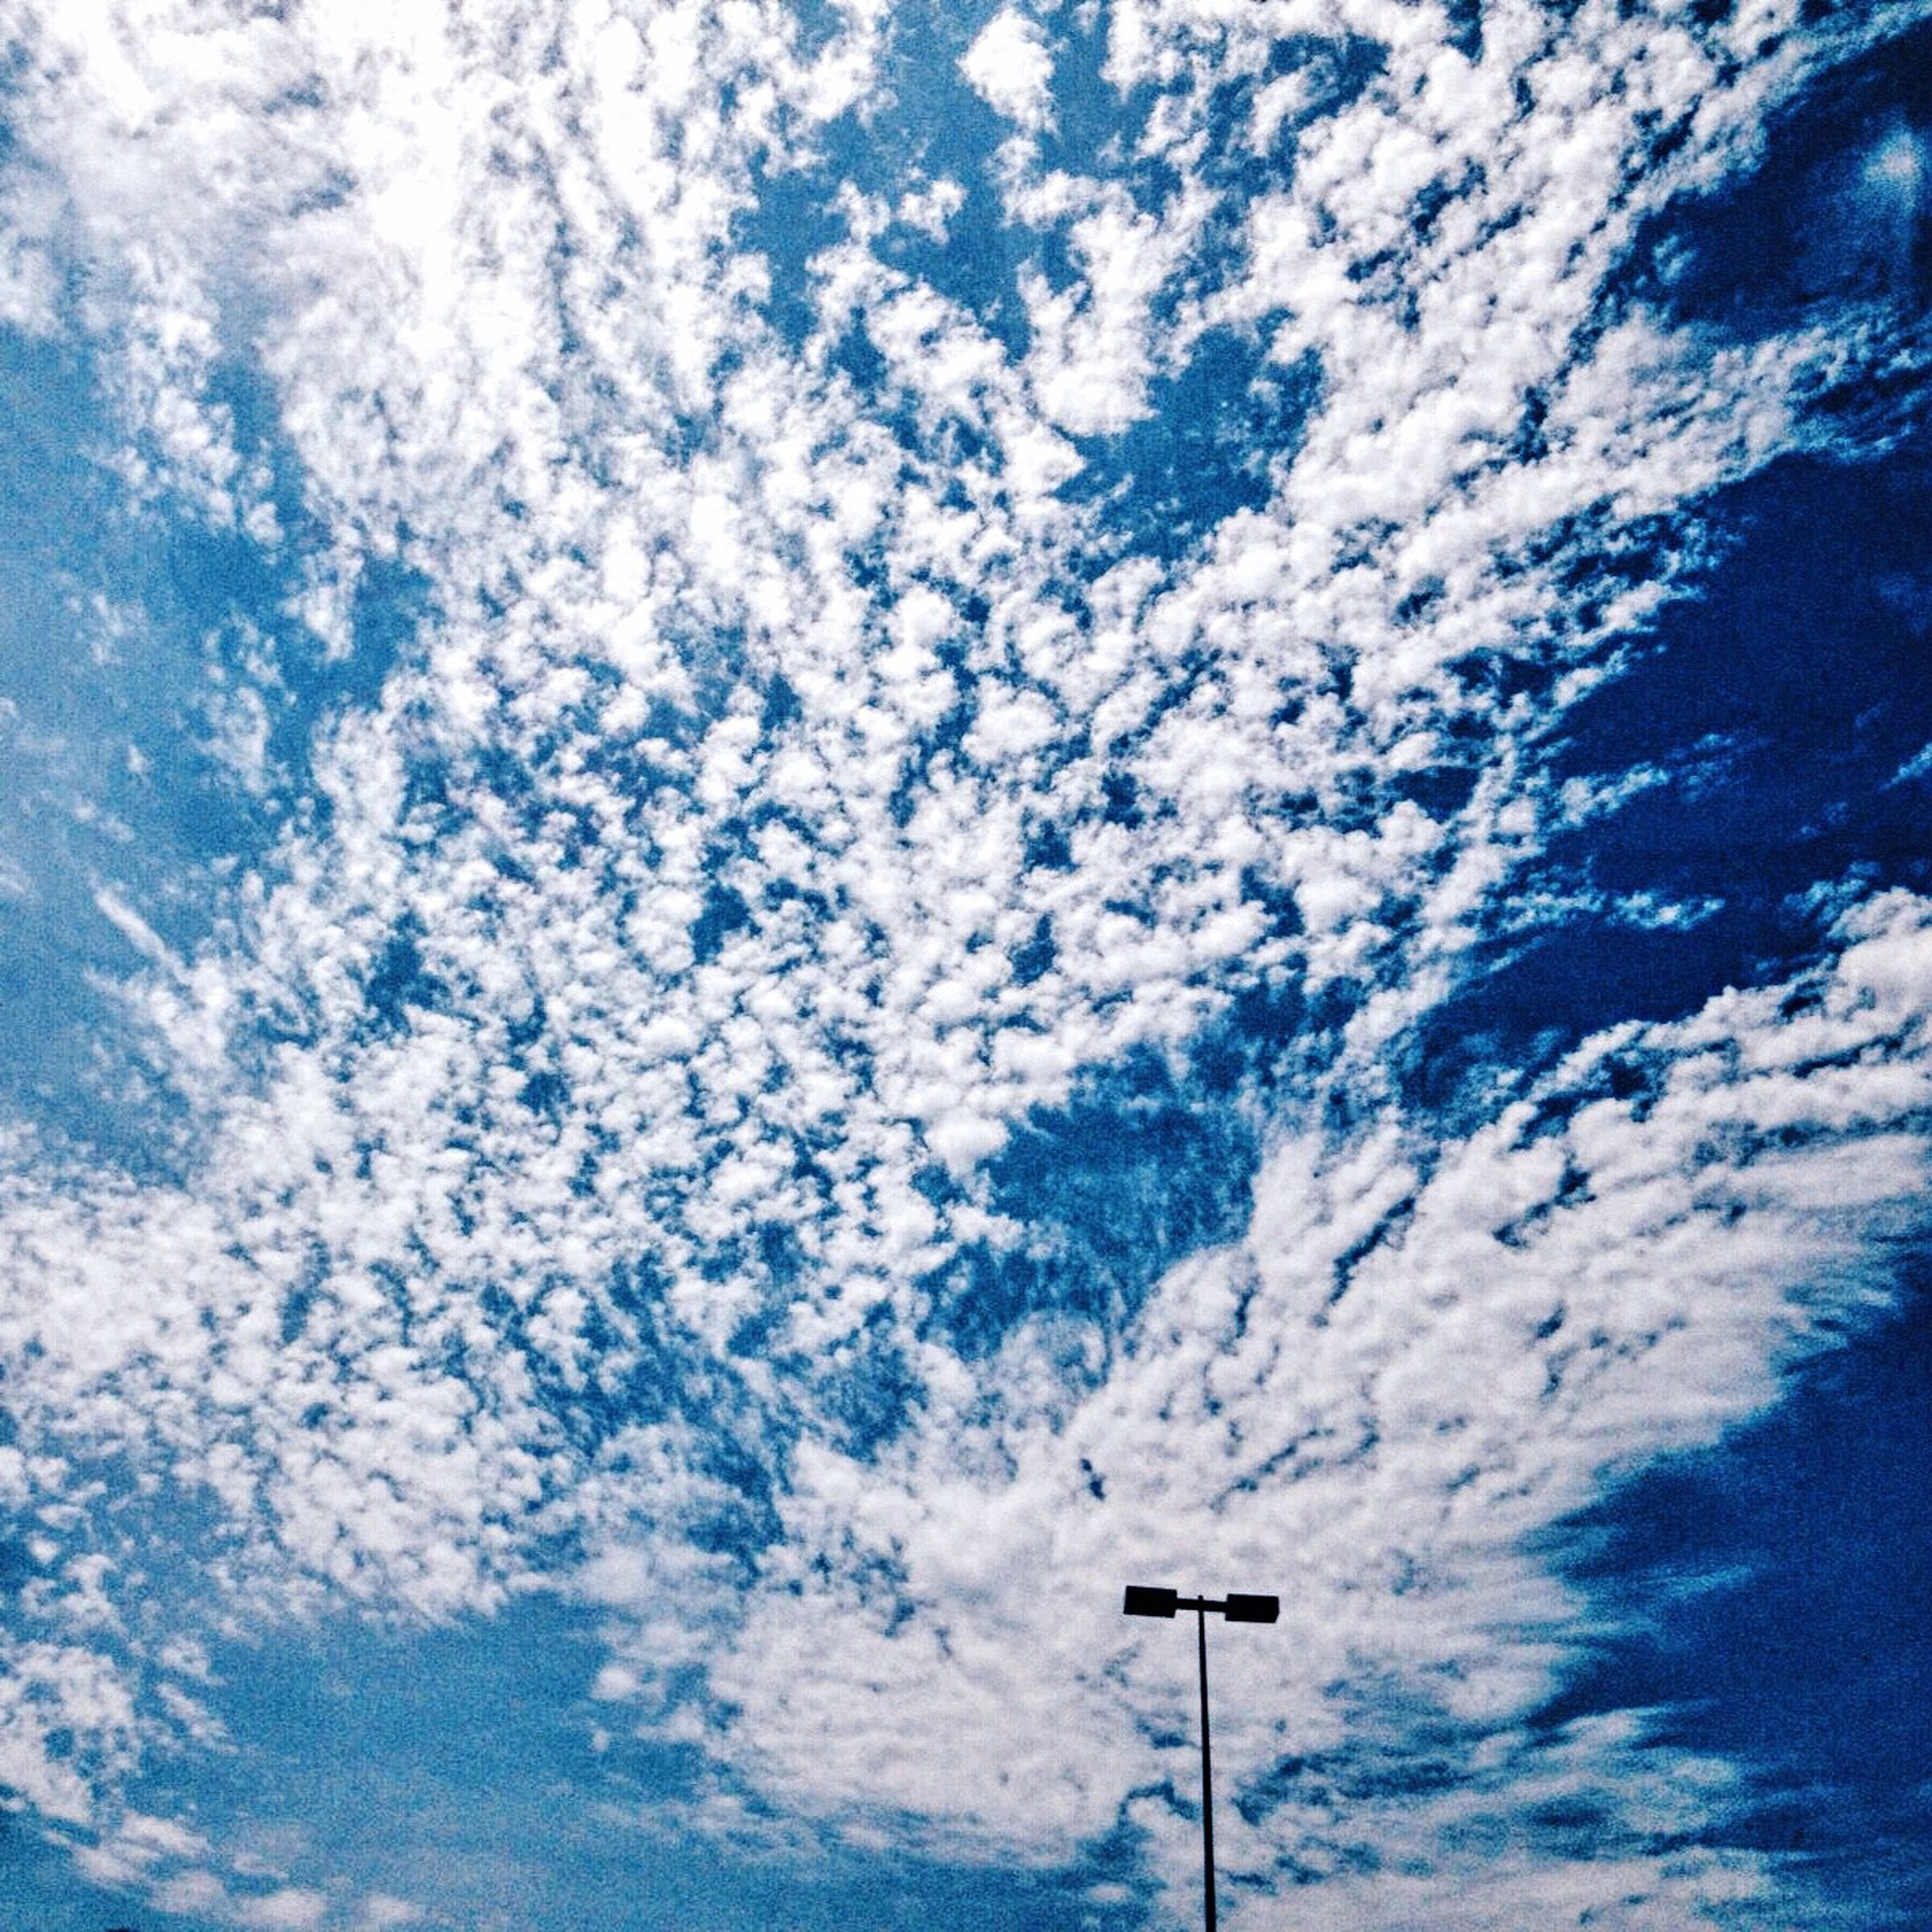 low angle view, sky, cloud - sky, blue, street light, cloudy, cloud, tranquility, nature, beauty in nature, scenics, high section, outdoors, day, no people, lighting equipment, pole, cloudscape, weather, tranquil scene